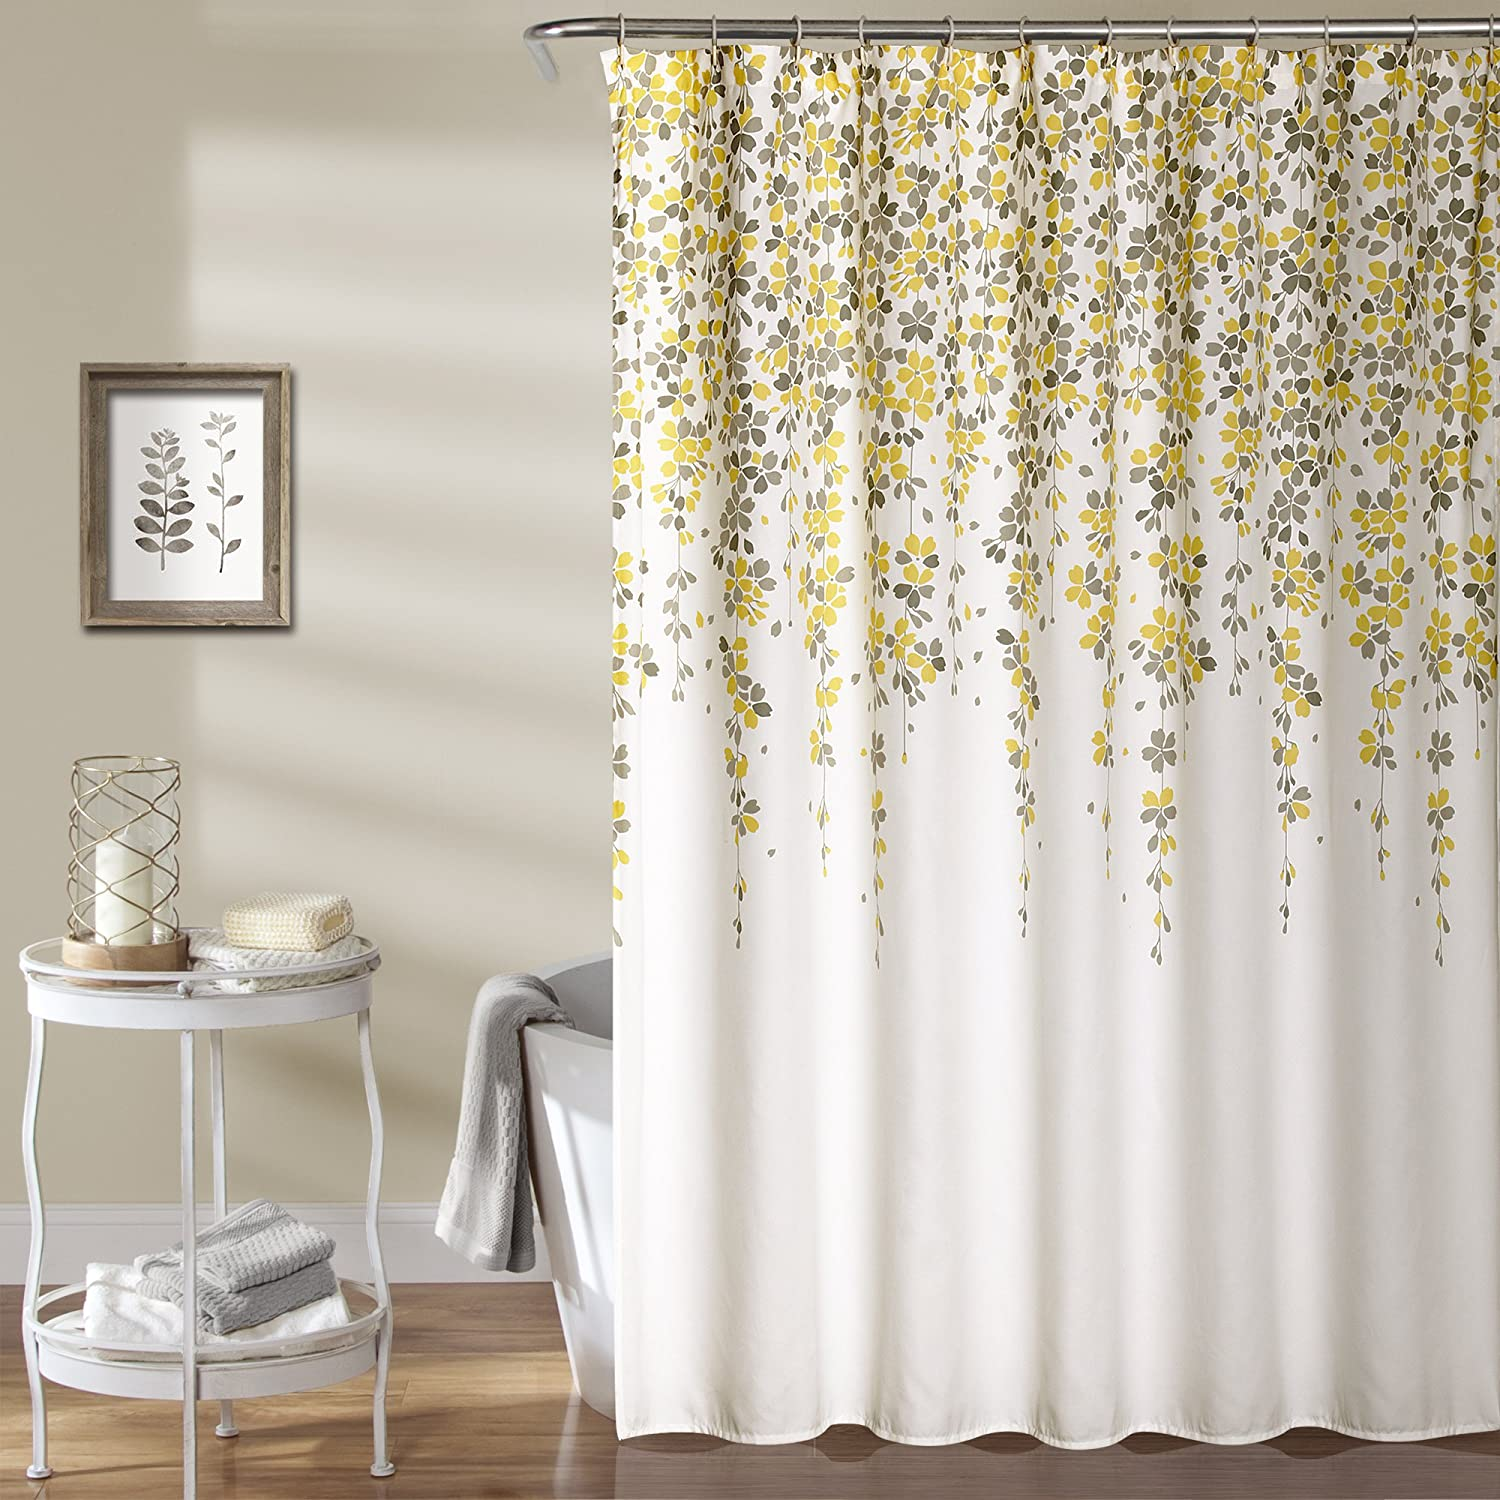 Lush Decor Weeping Flower Shower Curtain, 72 x 72, Yellow/Gray 72 x 72 Triangle Home Fashions 16T000943